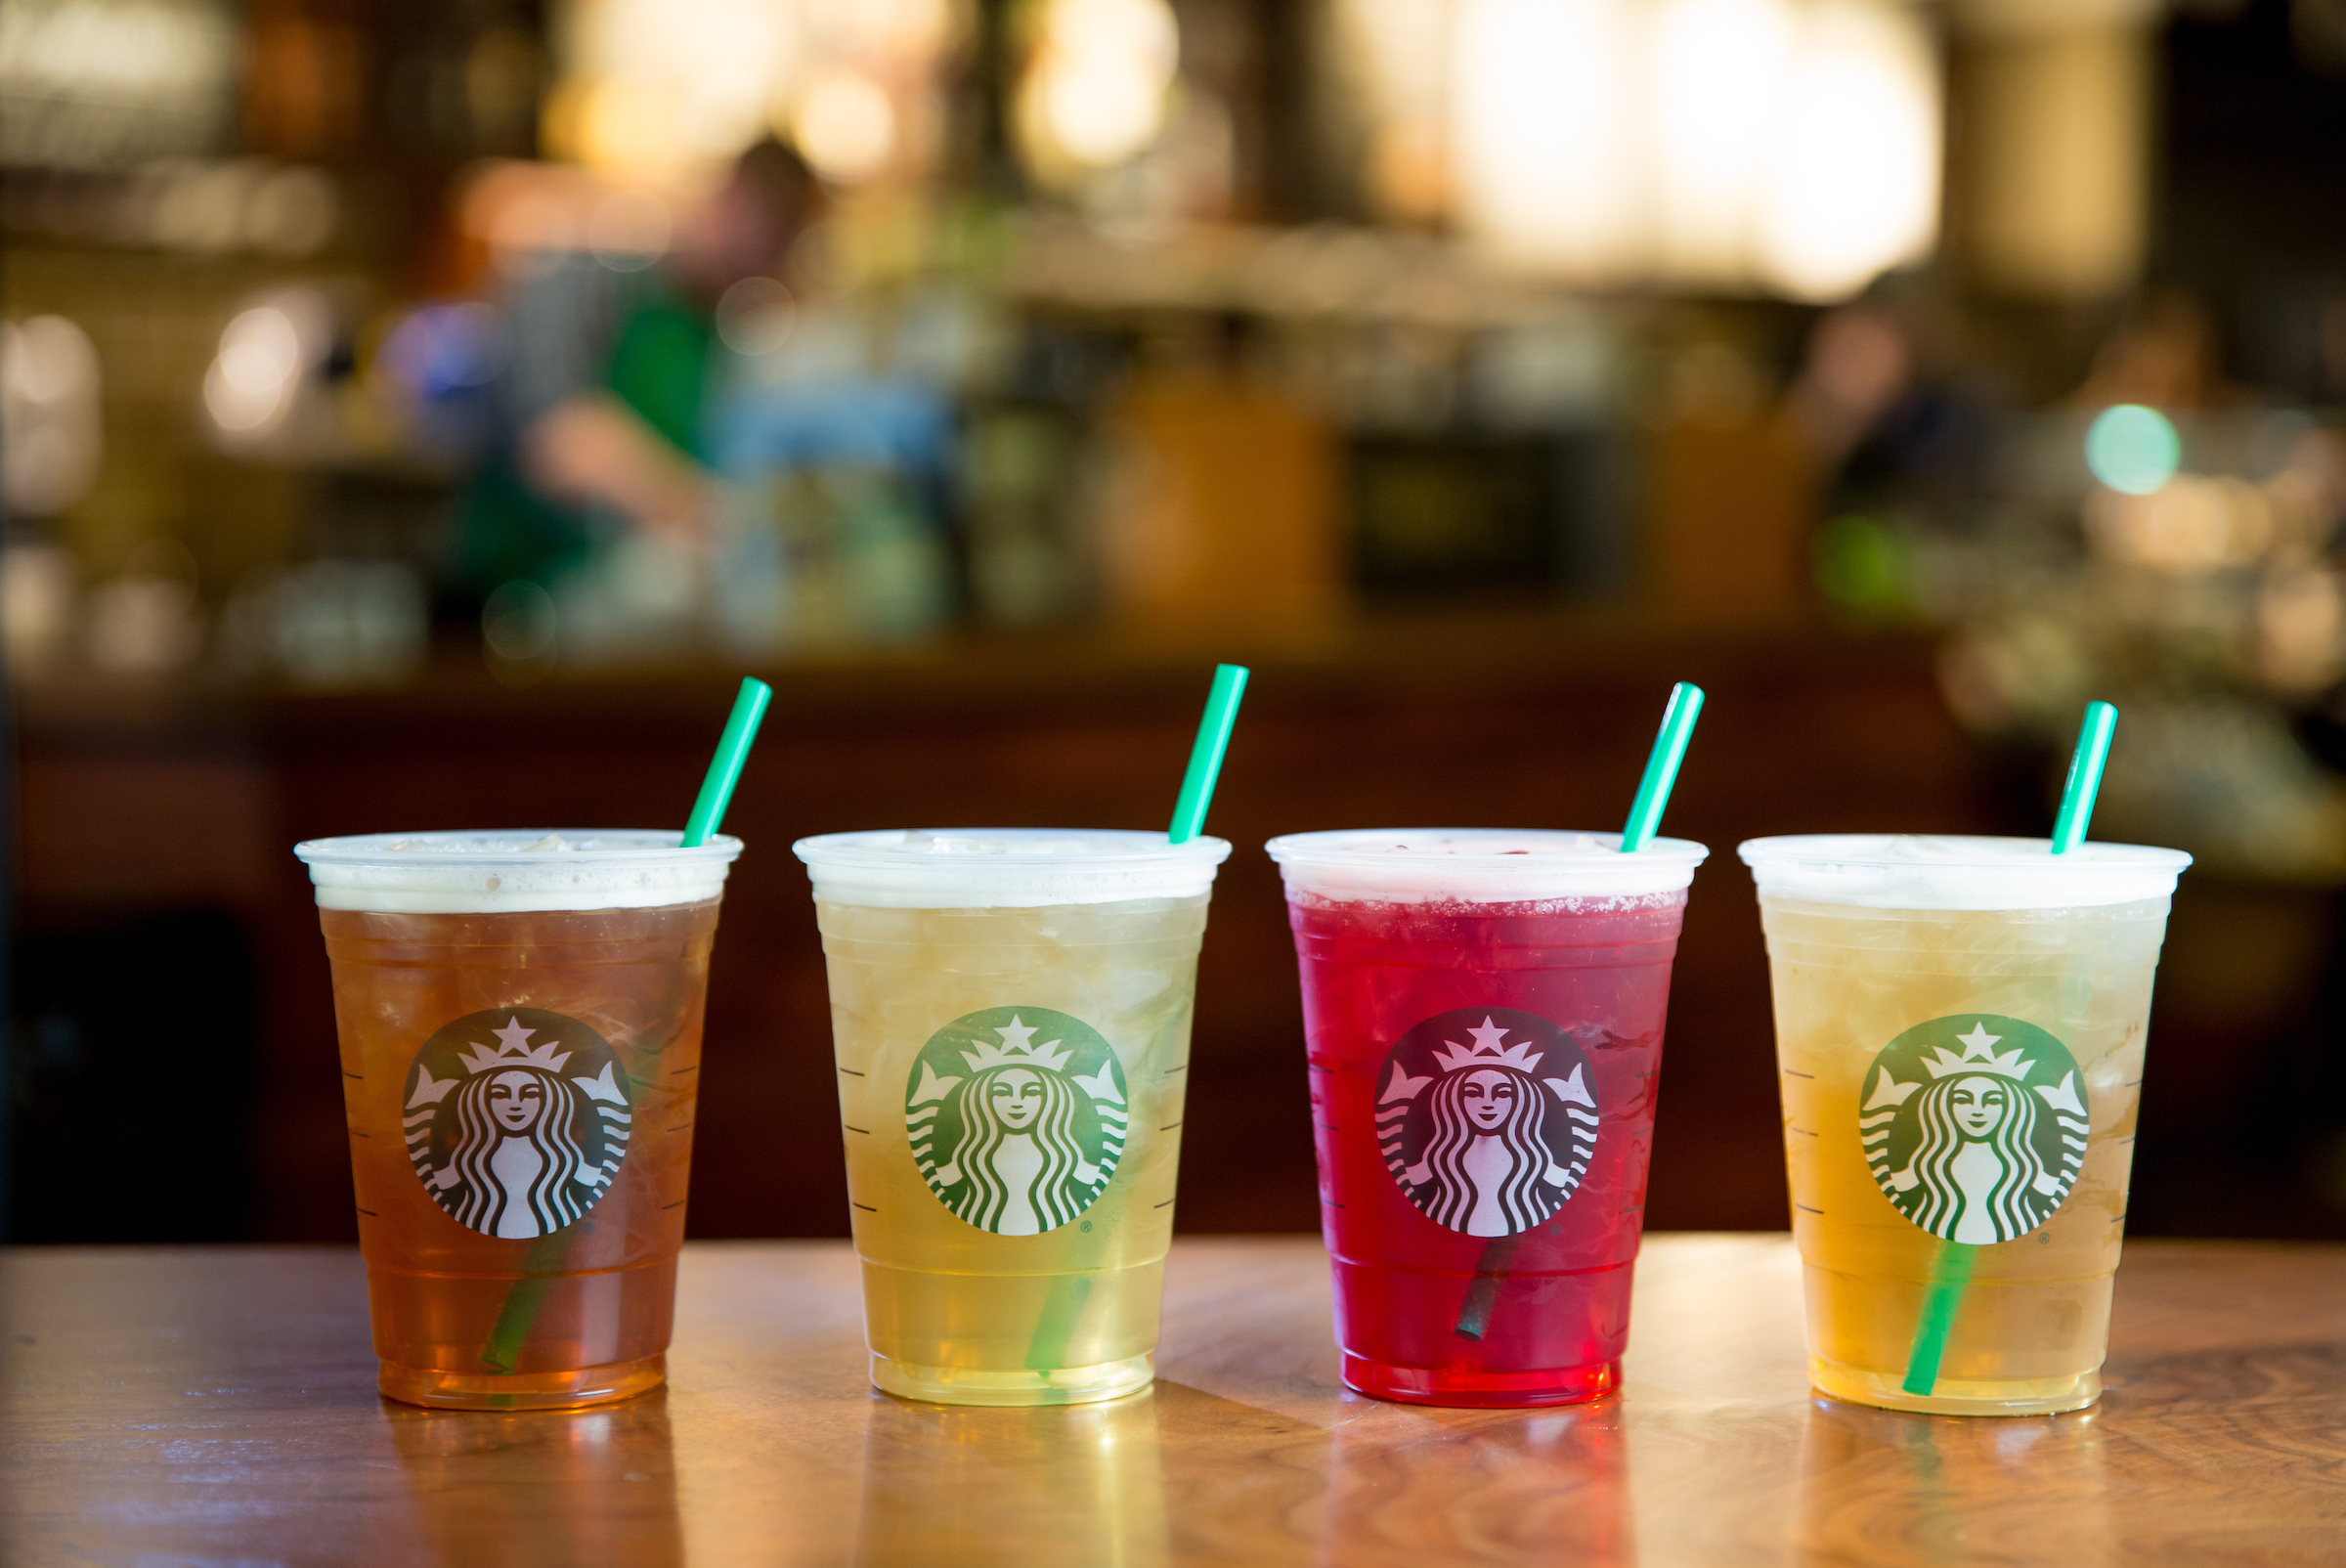 Starbucks' new teas are here to make your rainy spring days a little bit brighter